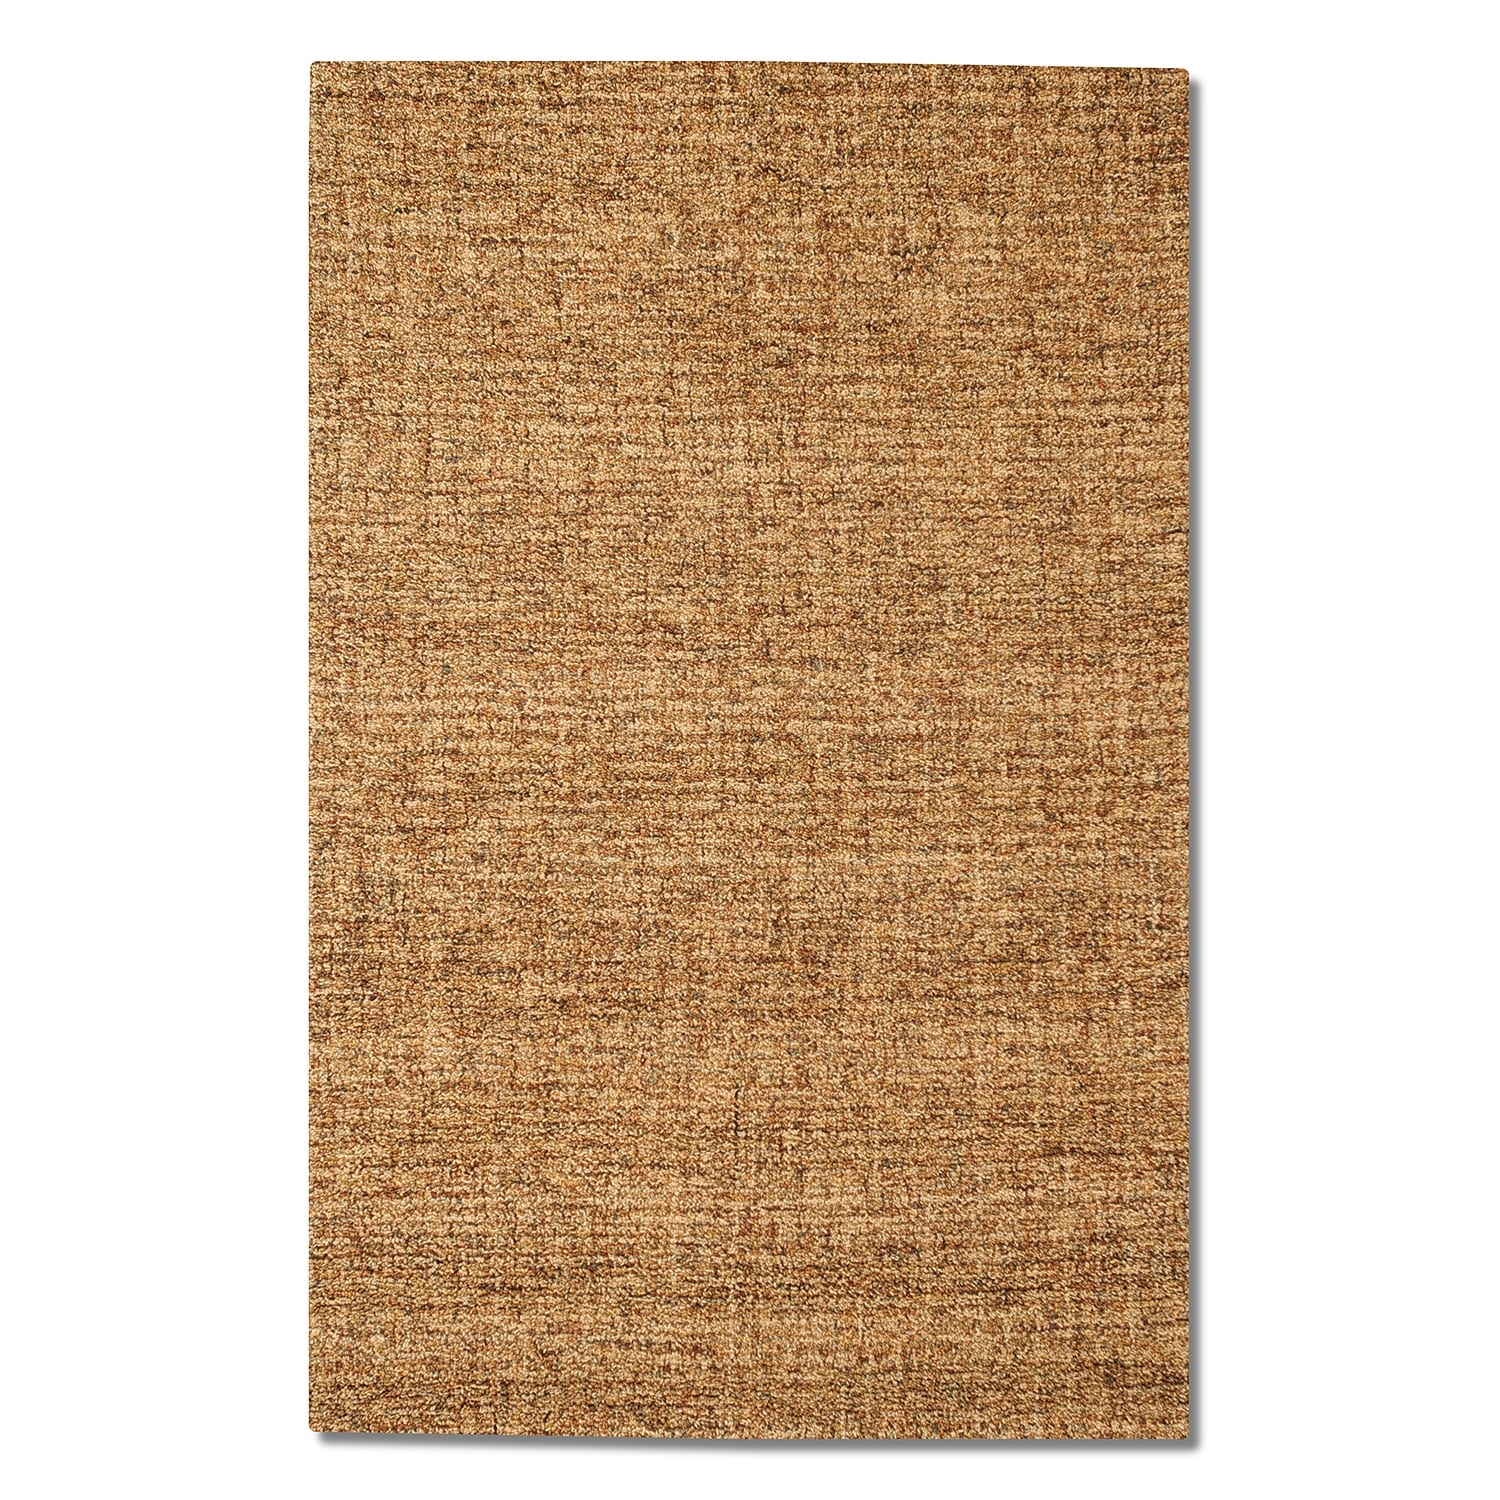 Rugs - Textures Hyde Area Rug (5' x 8')